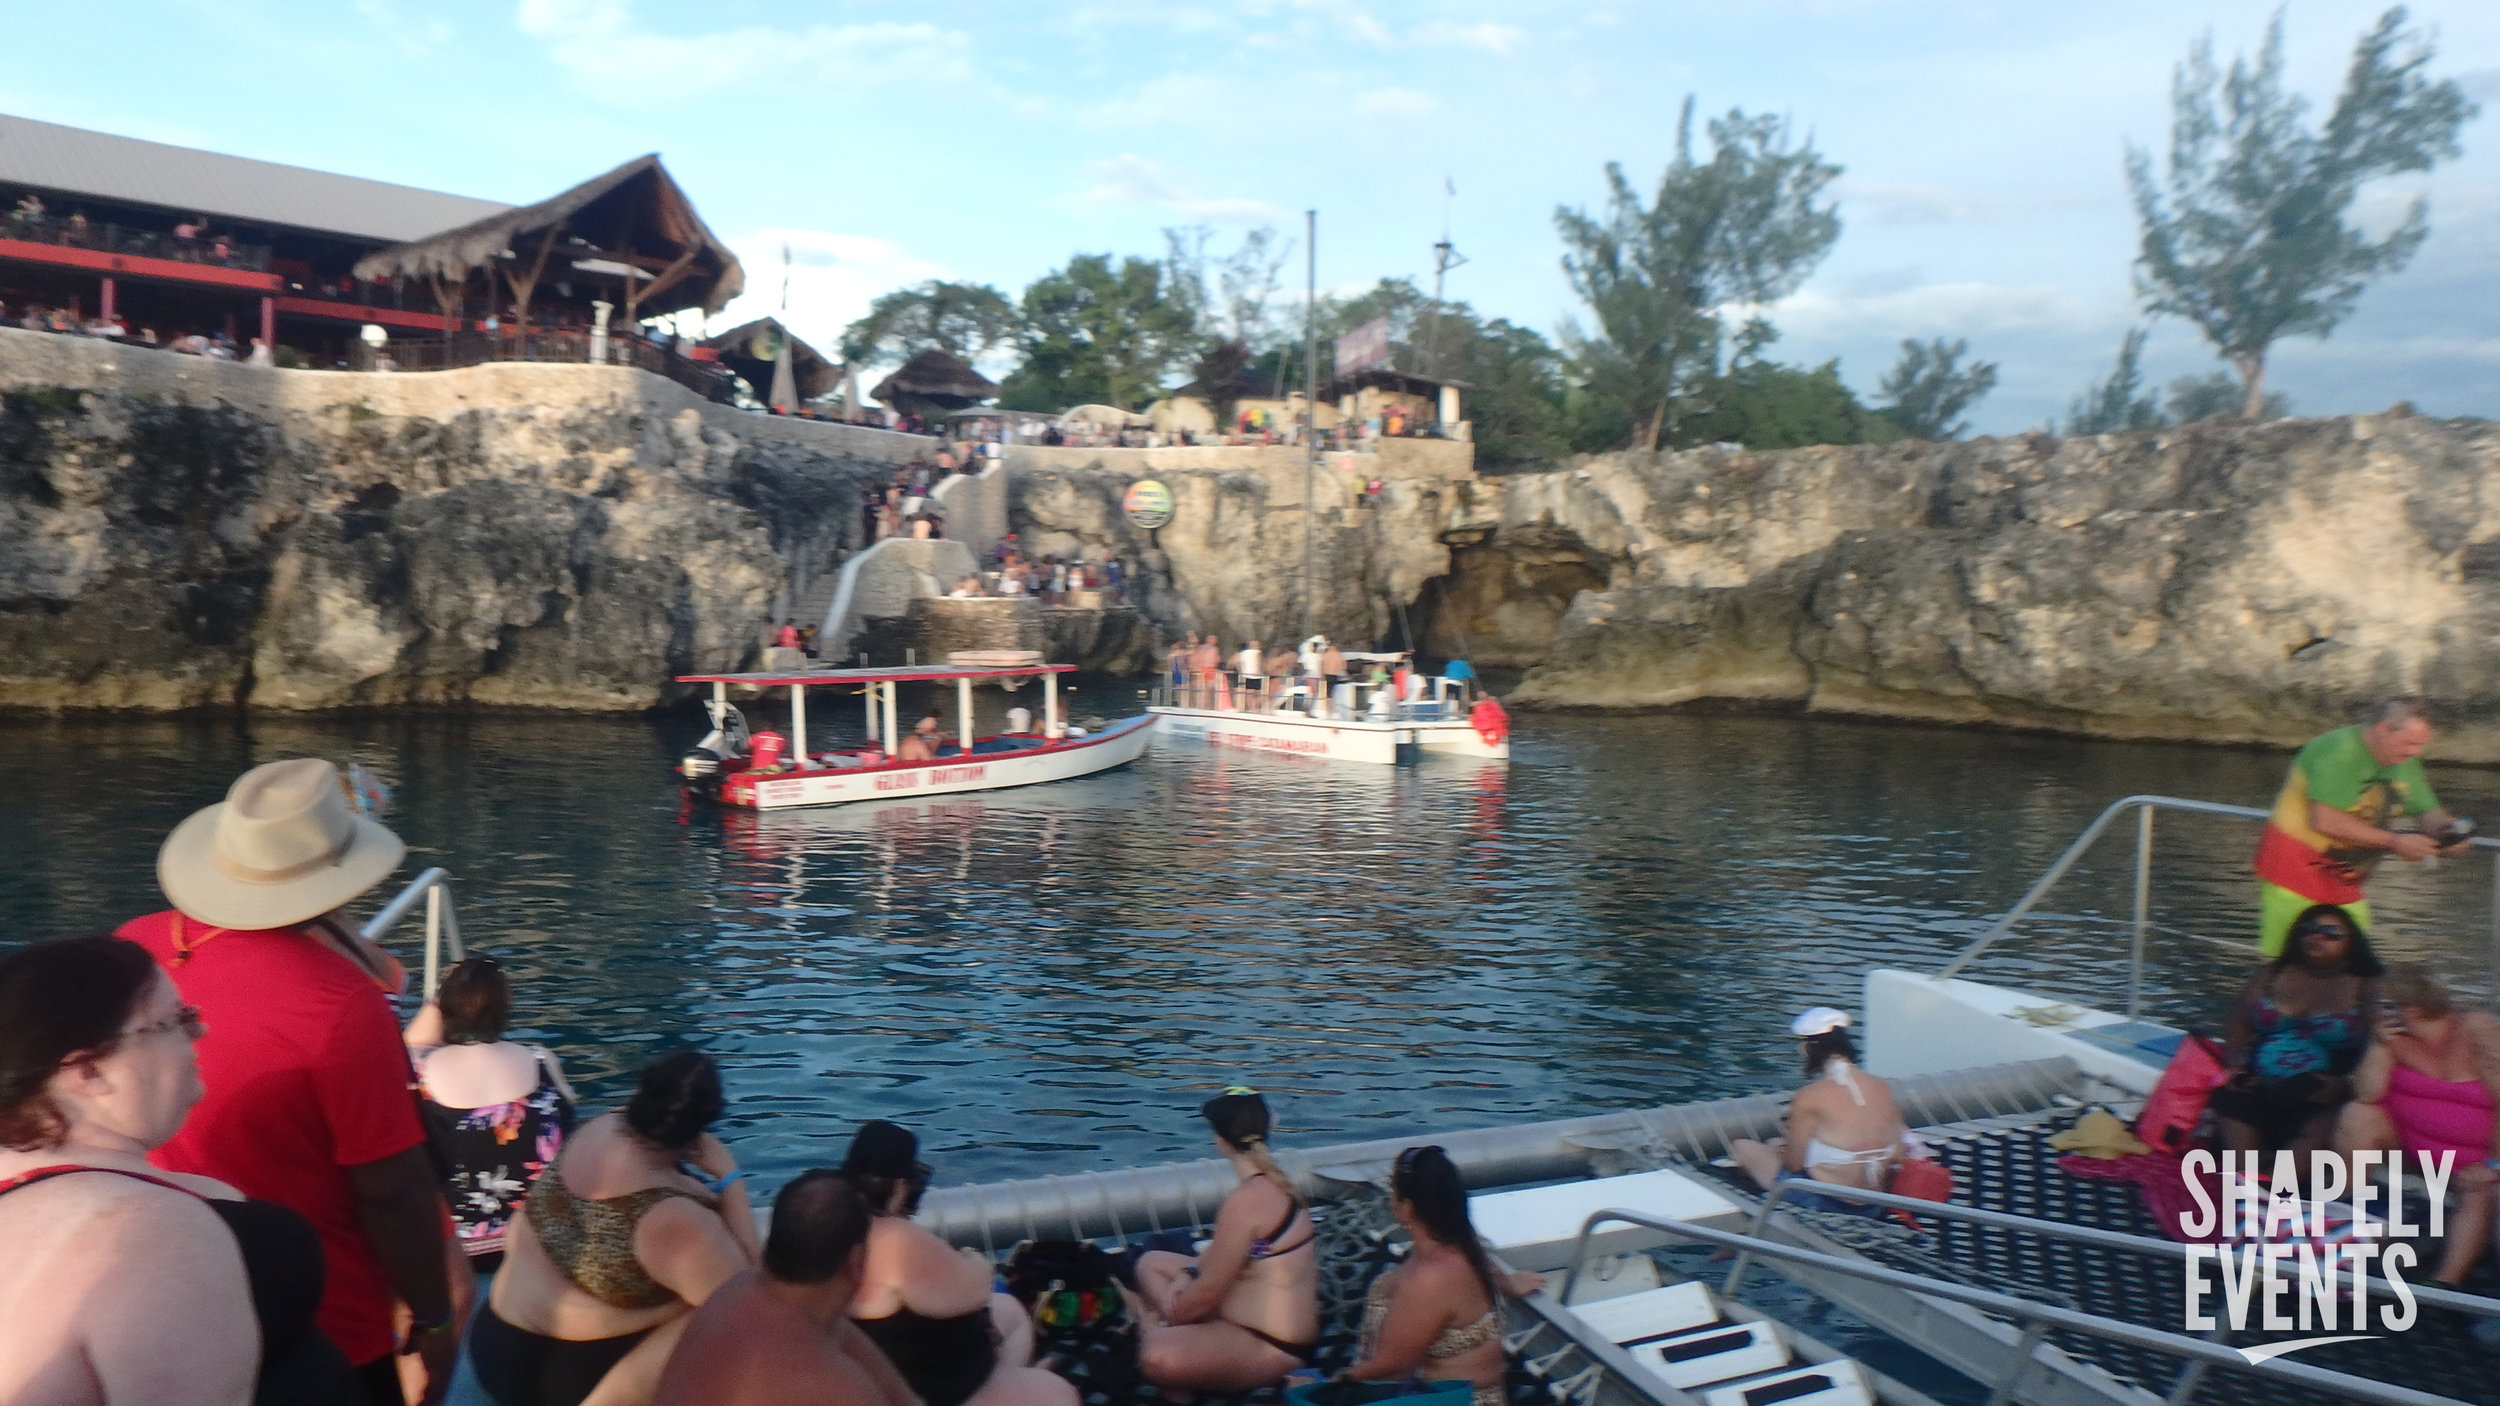 Day Trip To Negril - The BBW Travels.com crew makes it a point to put together fun & affordable excursions.